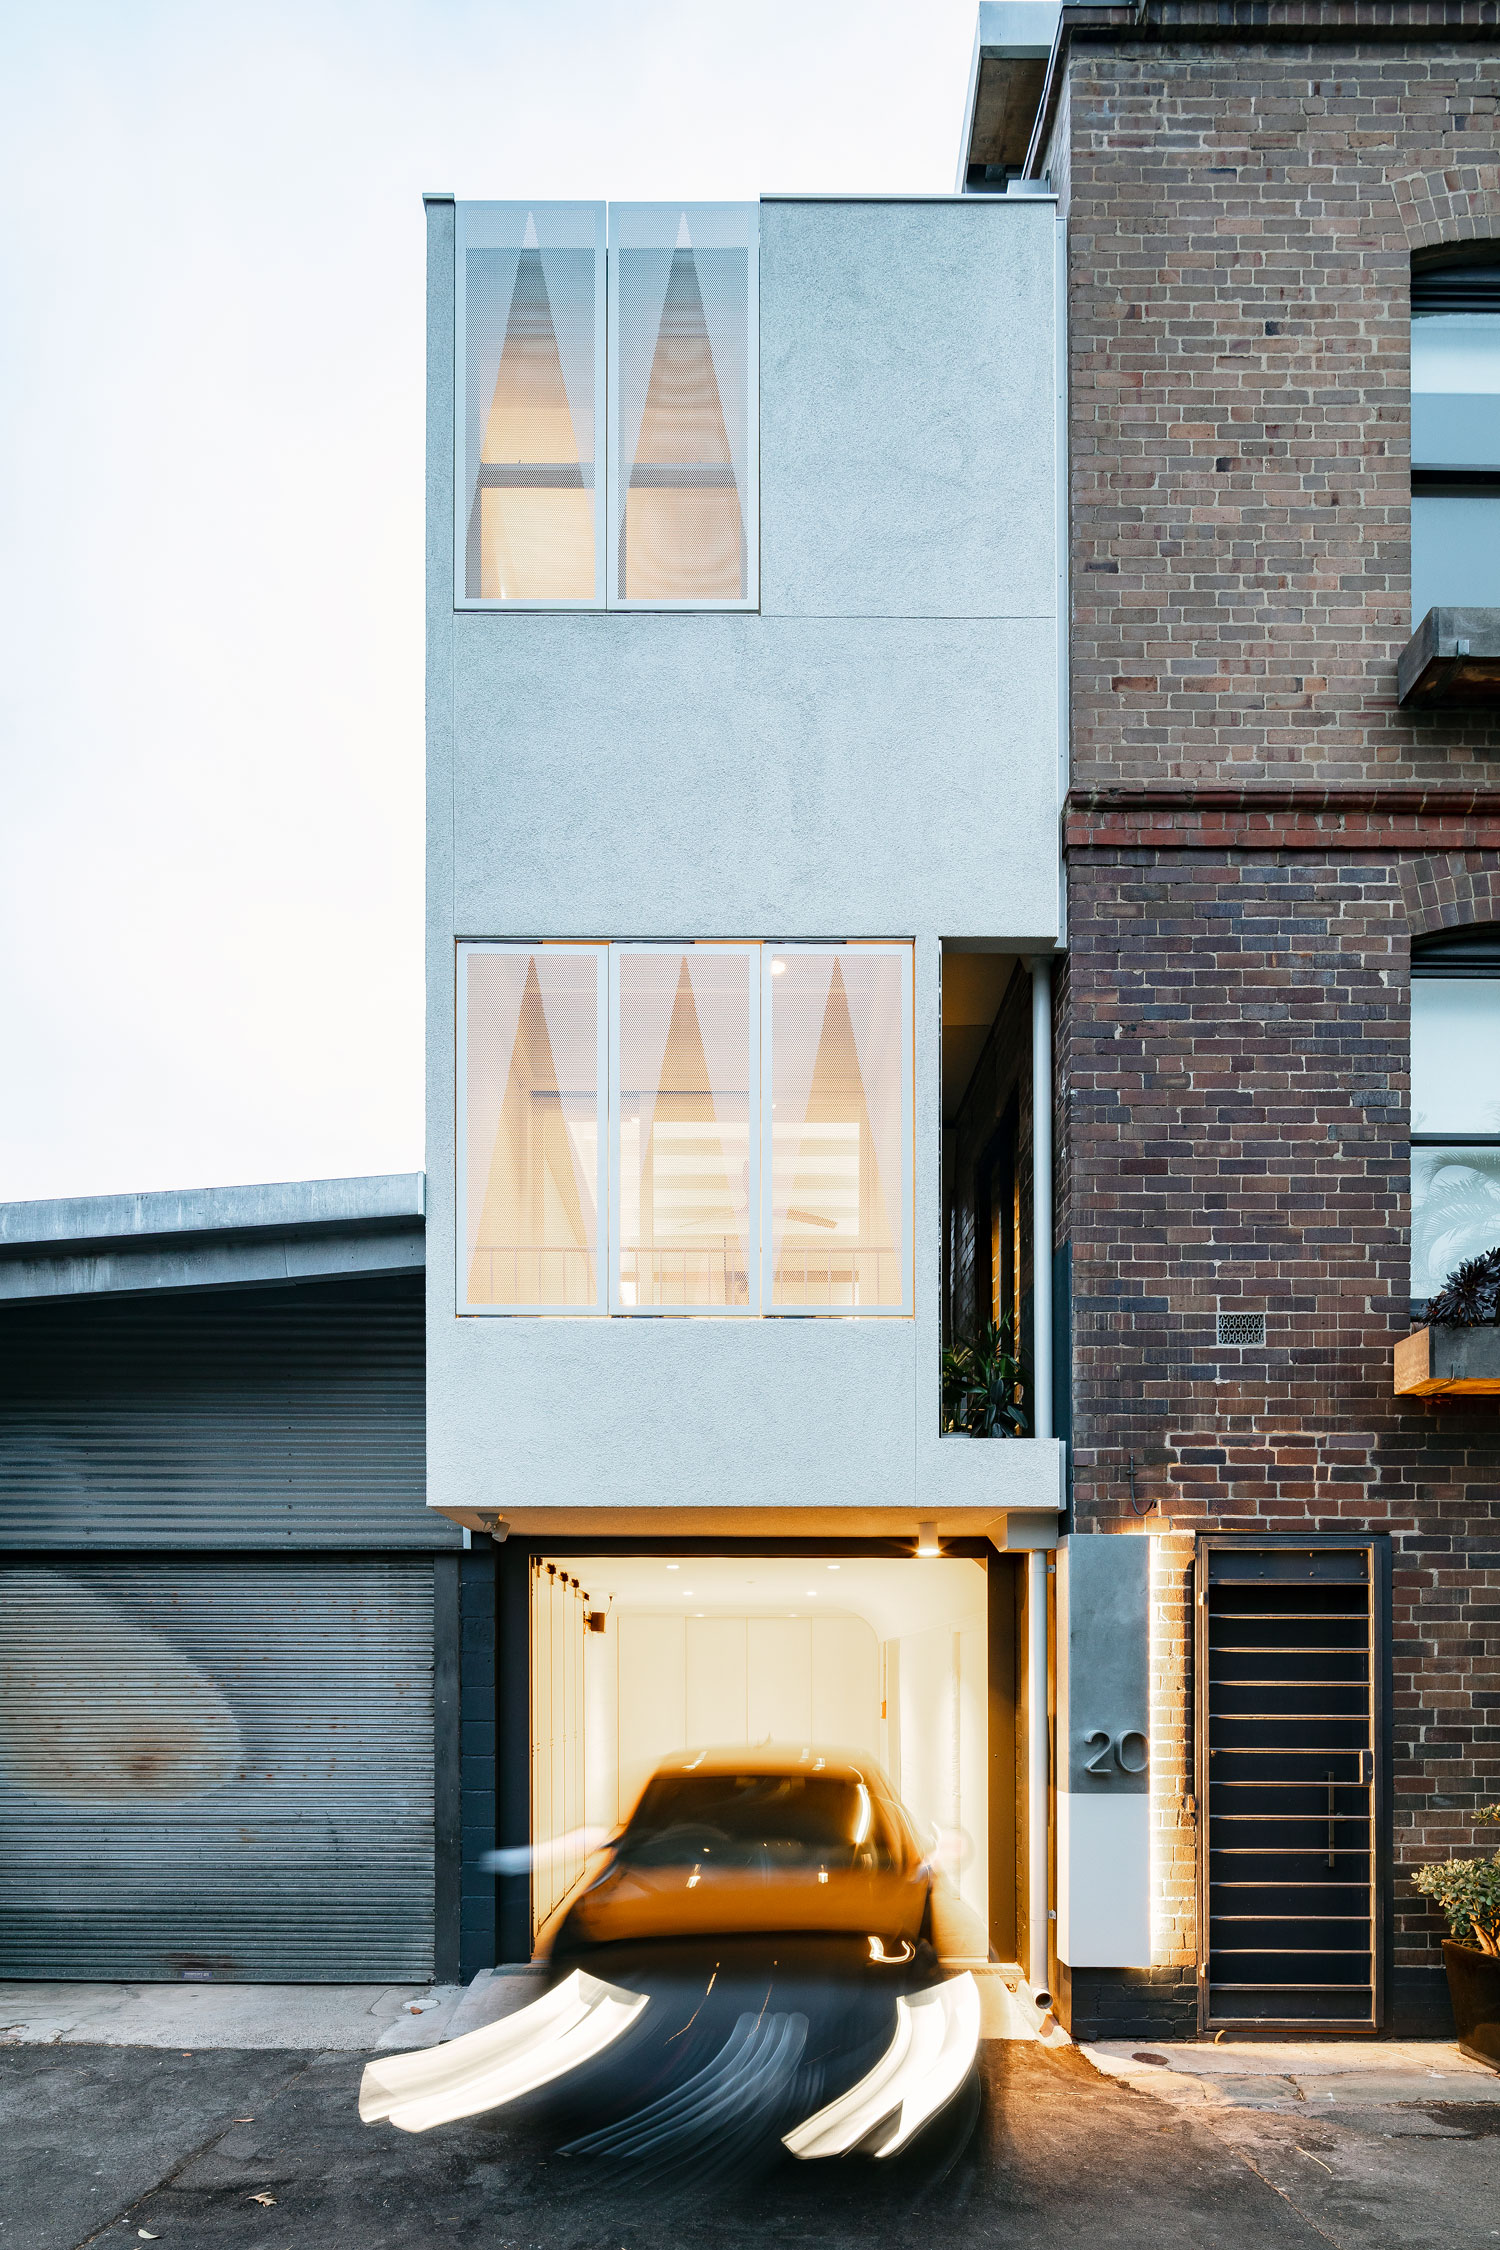 Darling Lane Sees A Stripped Back Sense Of Structure Created Within An Existing Light Filled Warehouse